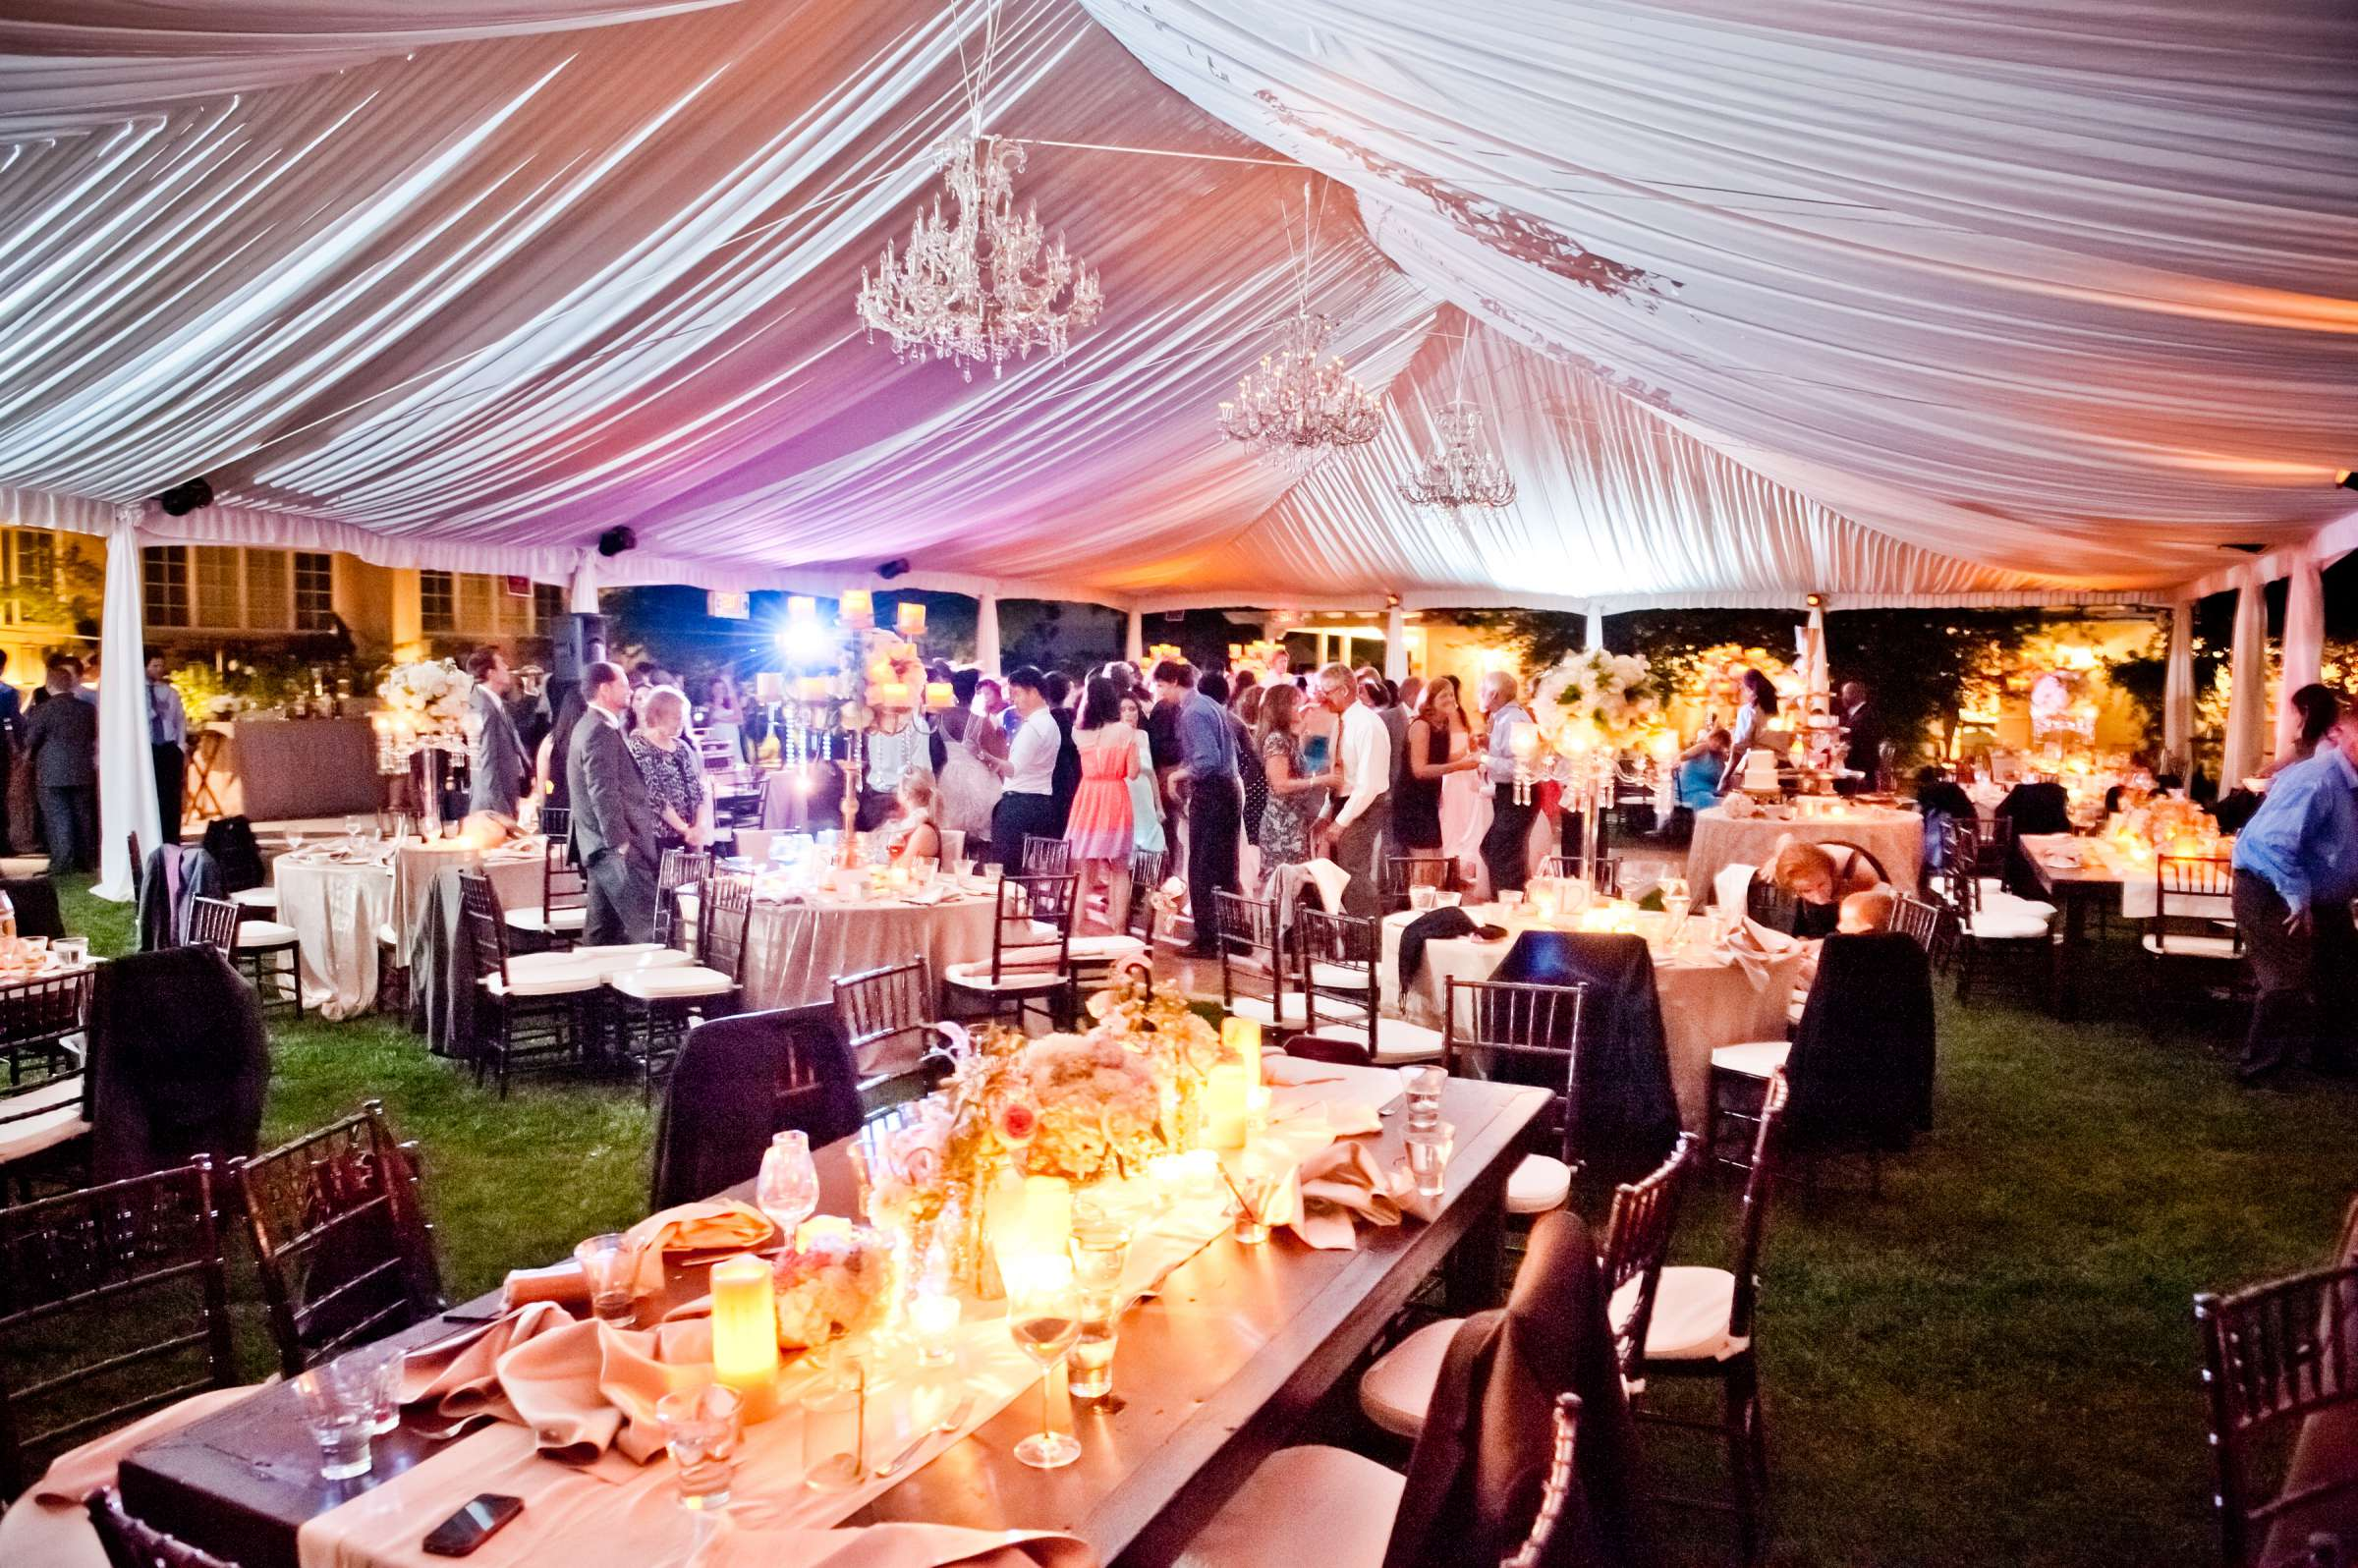 The Inn at Rancho Santa Fe Wedding coordinated by CZ Events, Michelle and Hyatt Wedding Photo #108 by True Photography